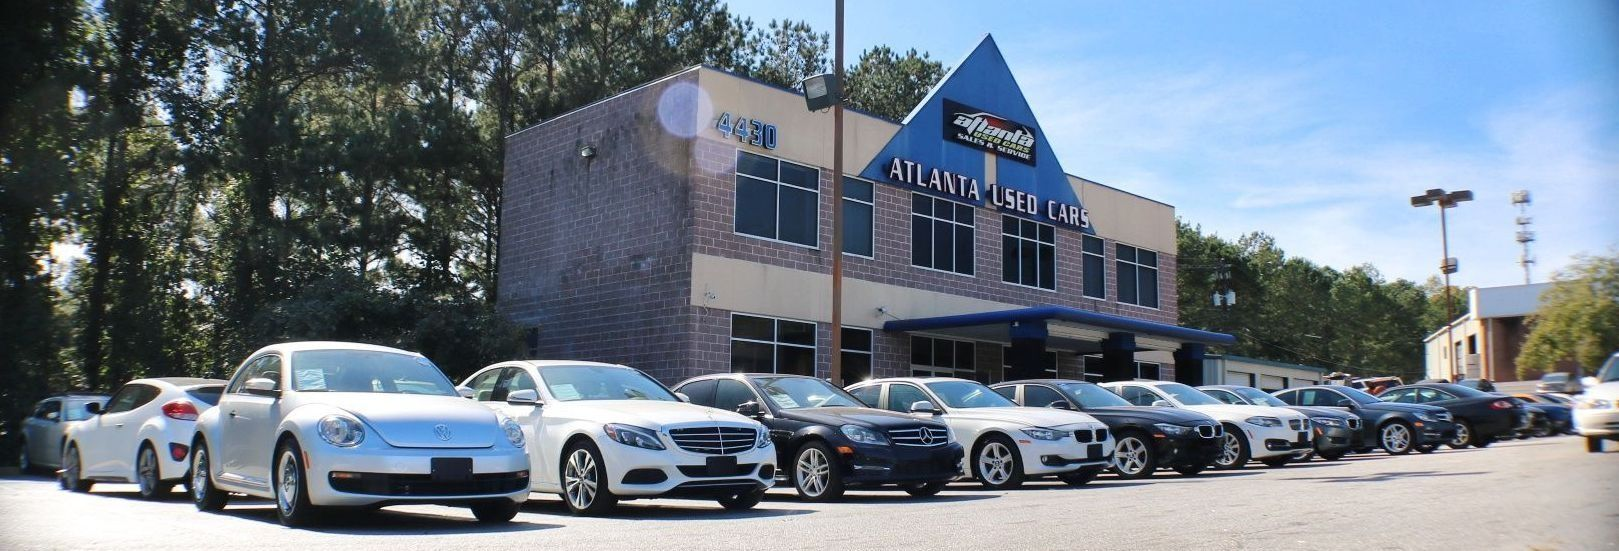 Atlanta Used Cars Marietta >> Used Vehicle Dealership Lilburn Ga Atlanta Used Car Sales